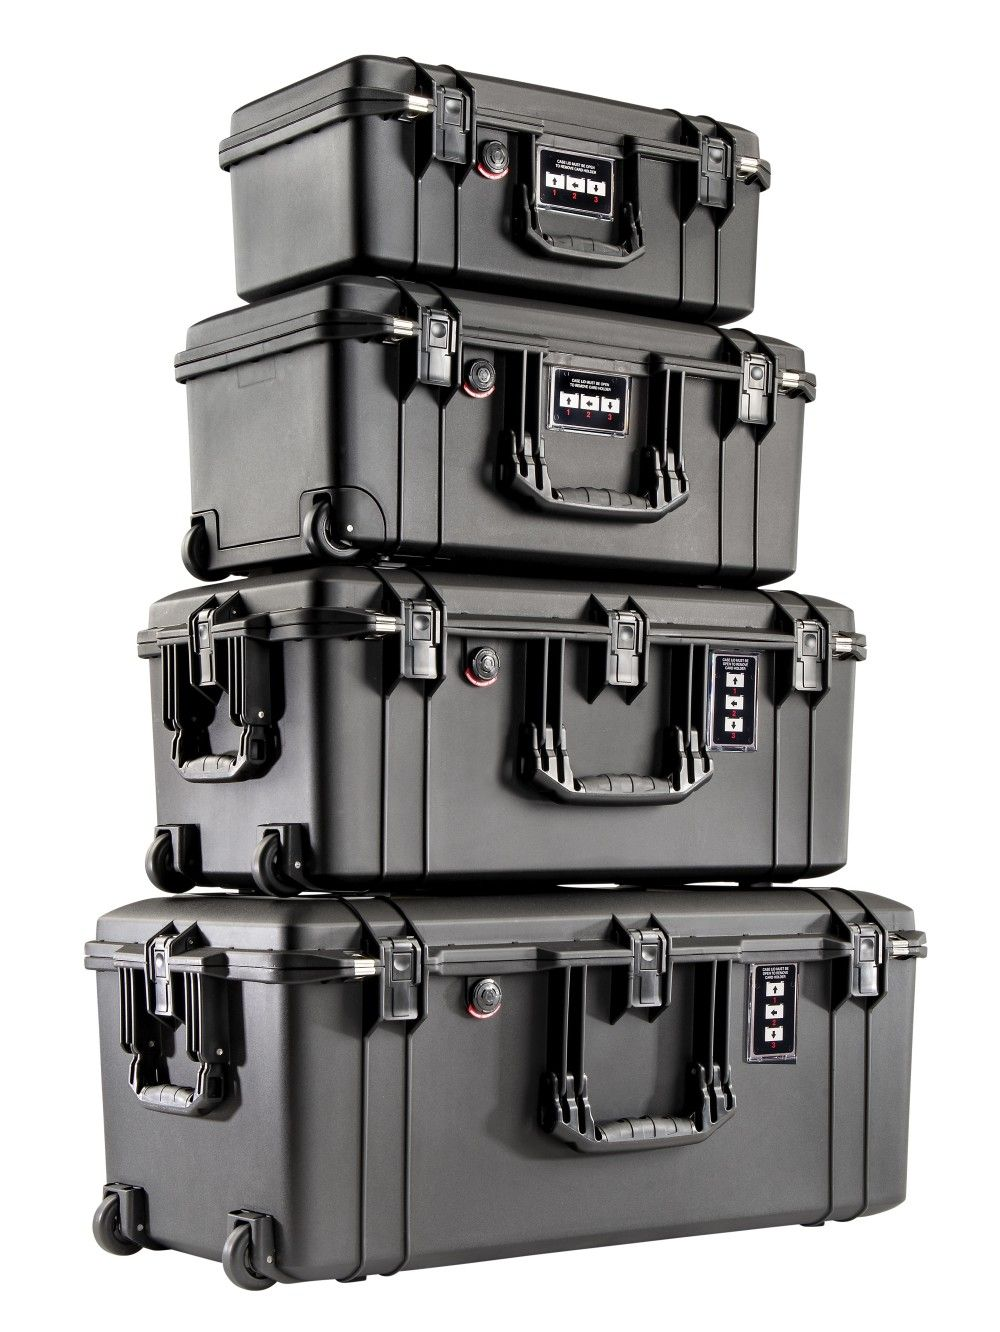 The 1506, 1556, 1606 and 1626 Pelican Air Cases are